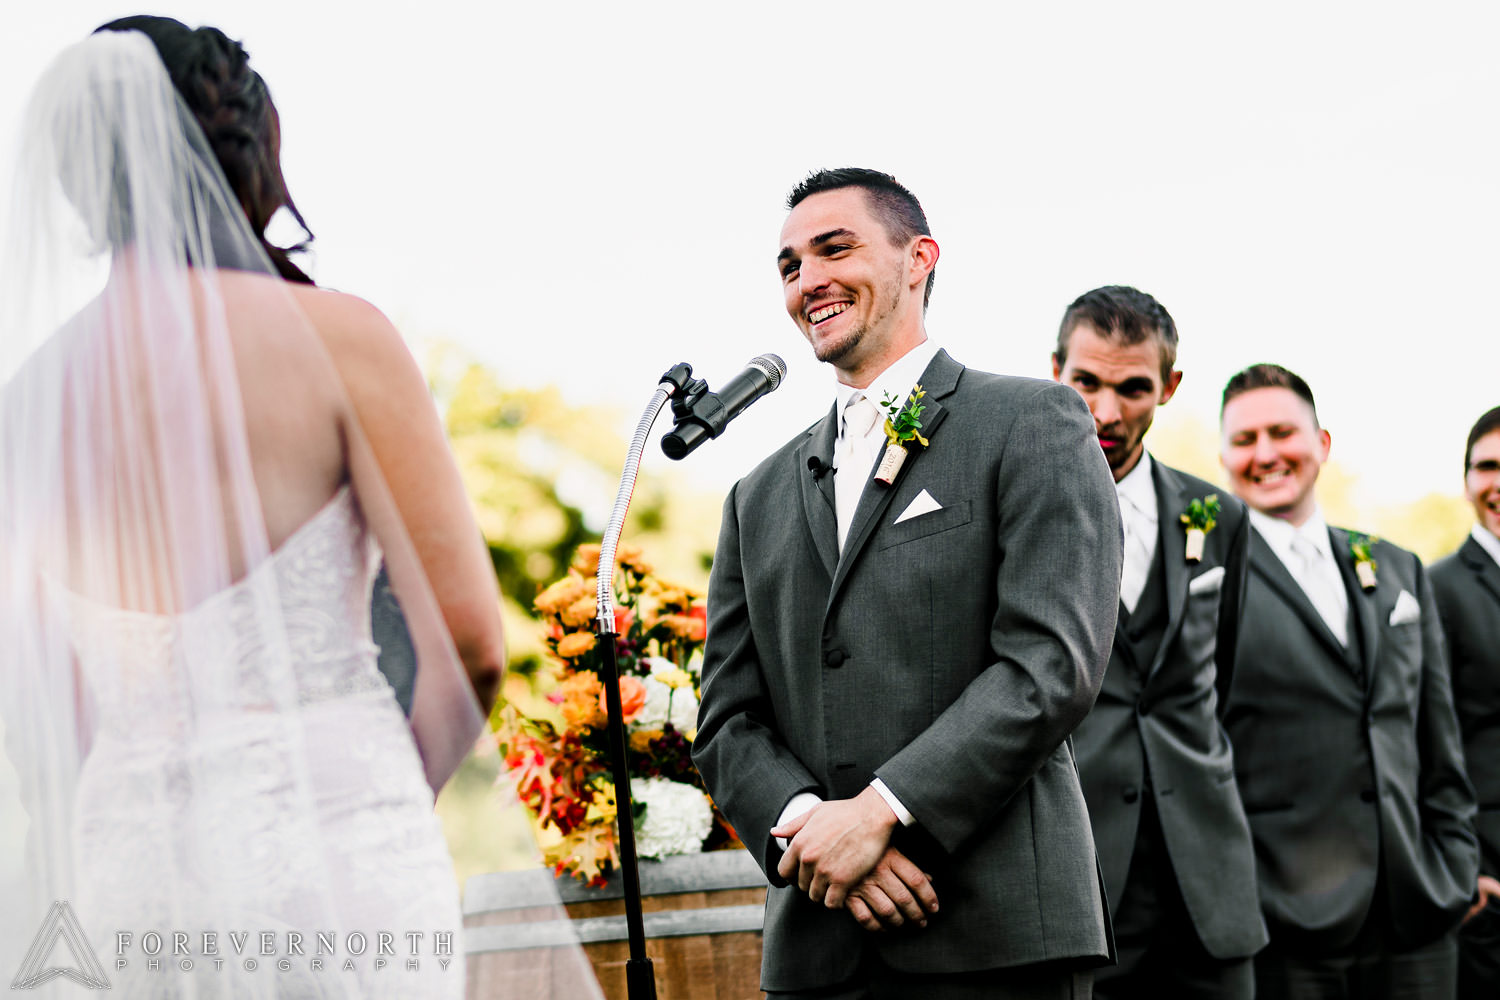 Mendyk-Valenzano-Family-Winery-NJ-Wedding-Photographer-51.JPG